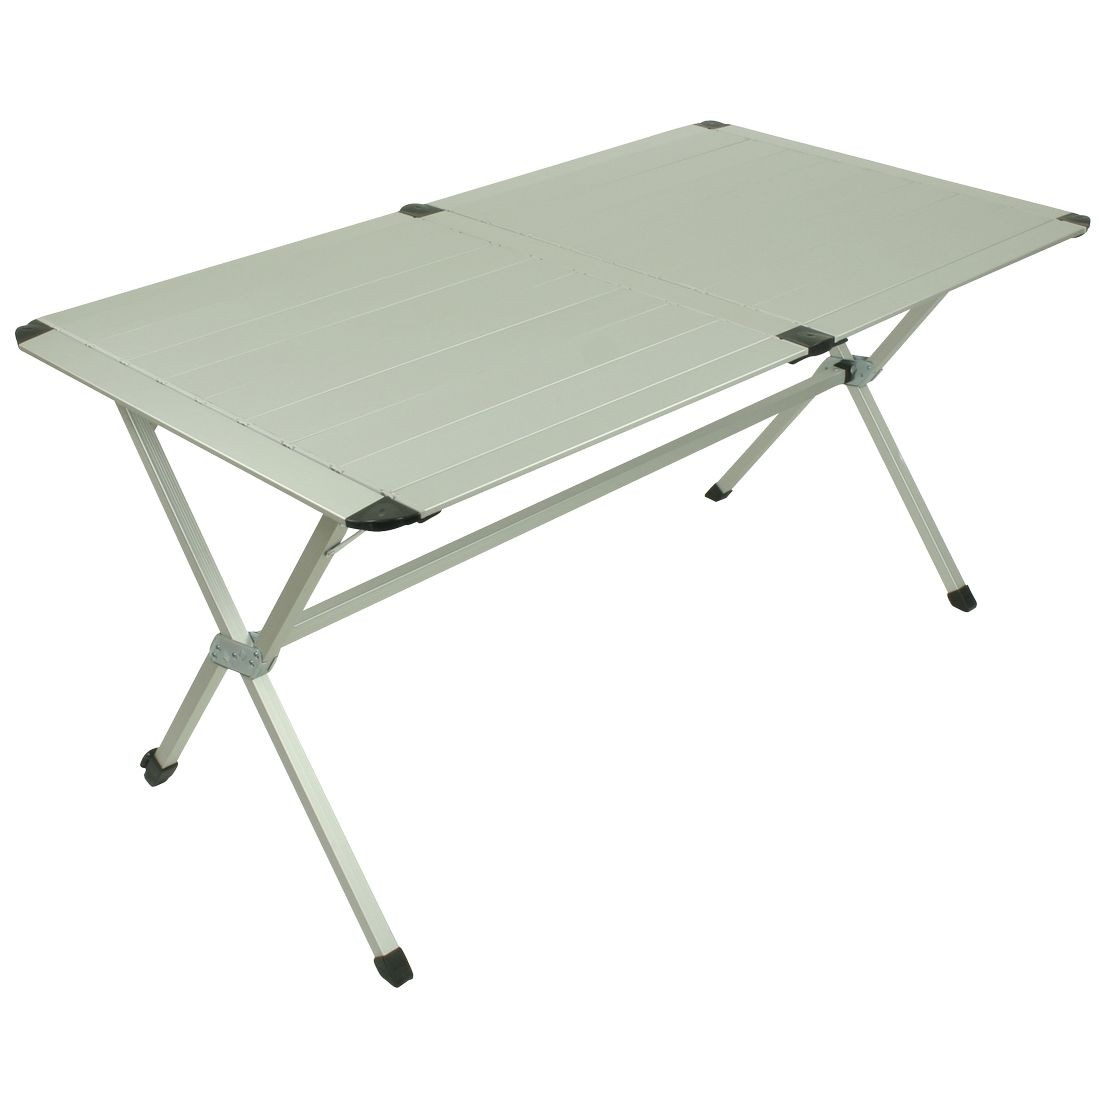 buy 10t alutab trio - camping table, 6 person, 140x80 cm with disc